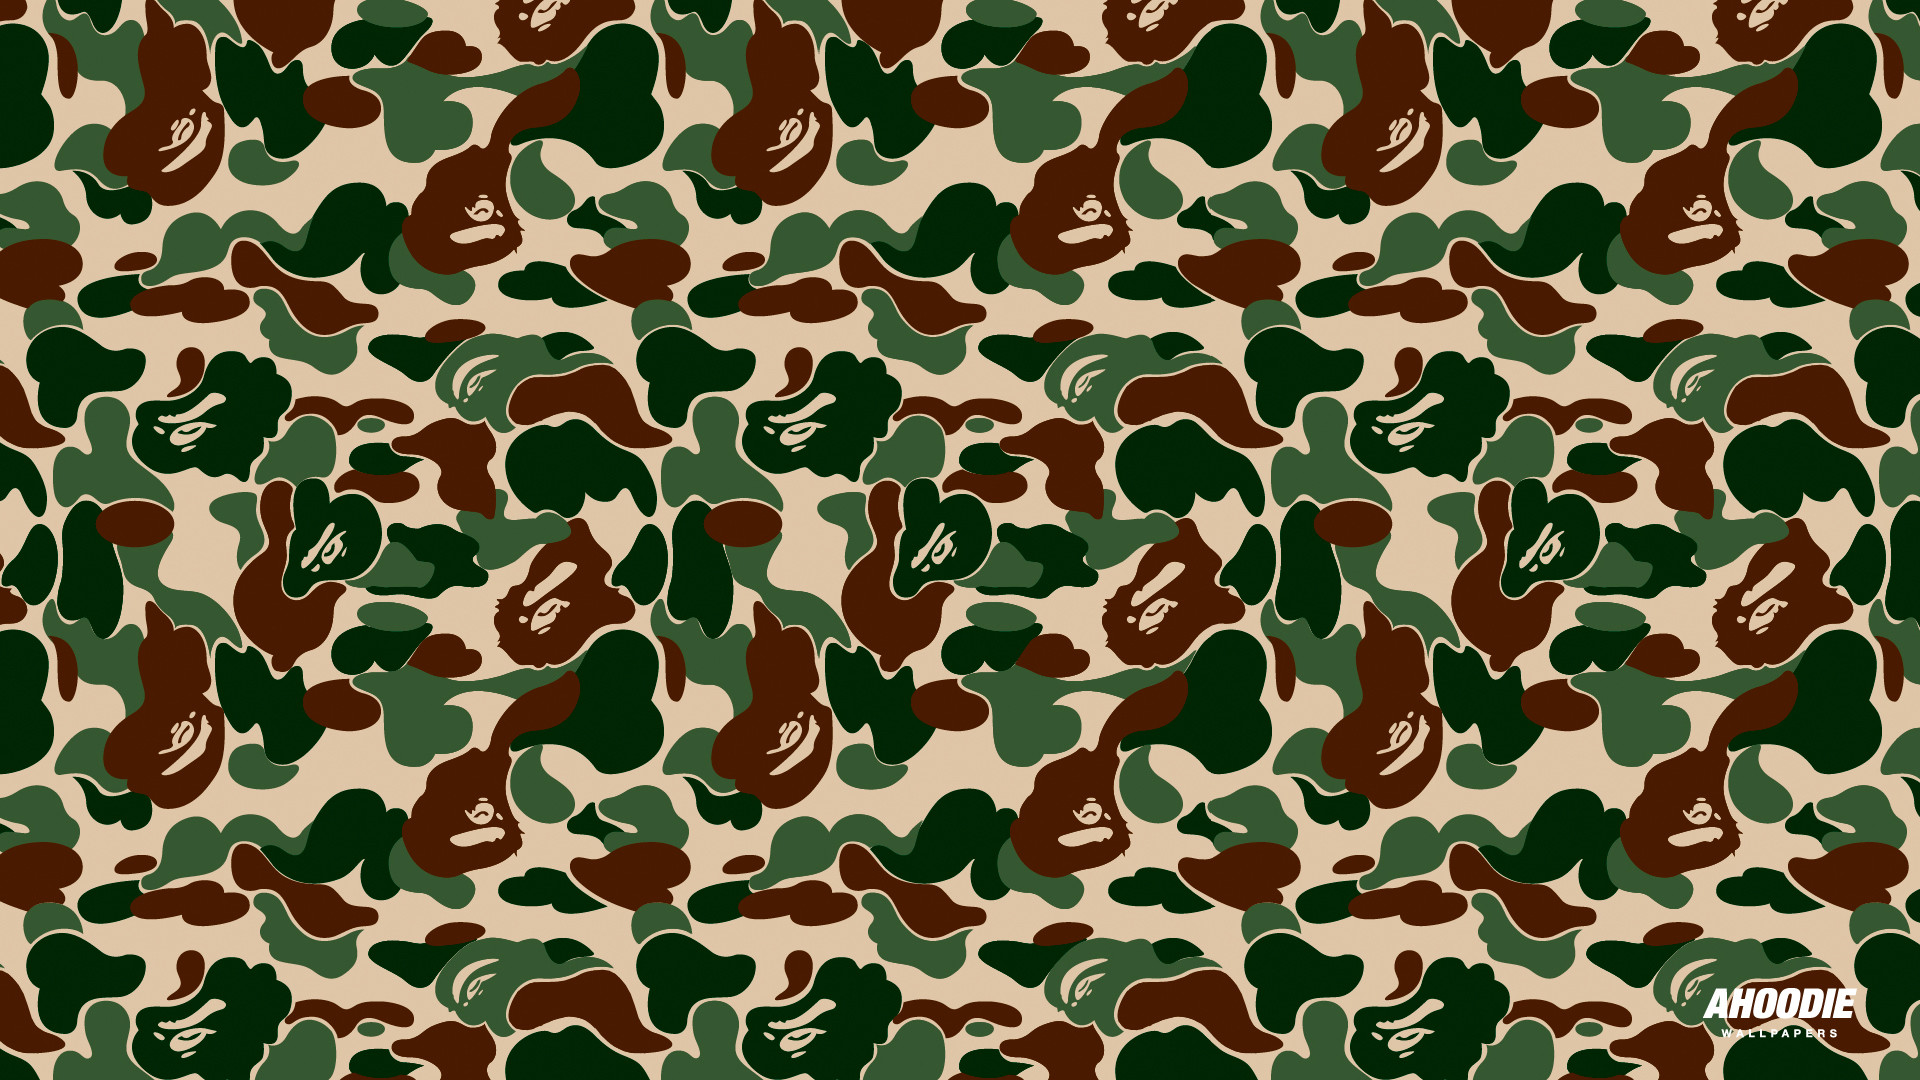 Bape - Bape Camo Wallpaper Hd - HD Wallpaper